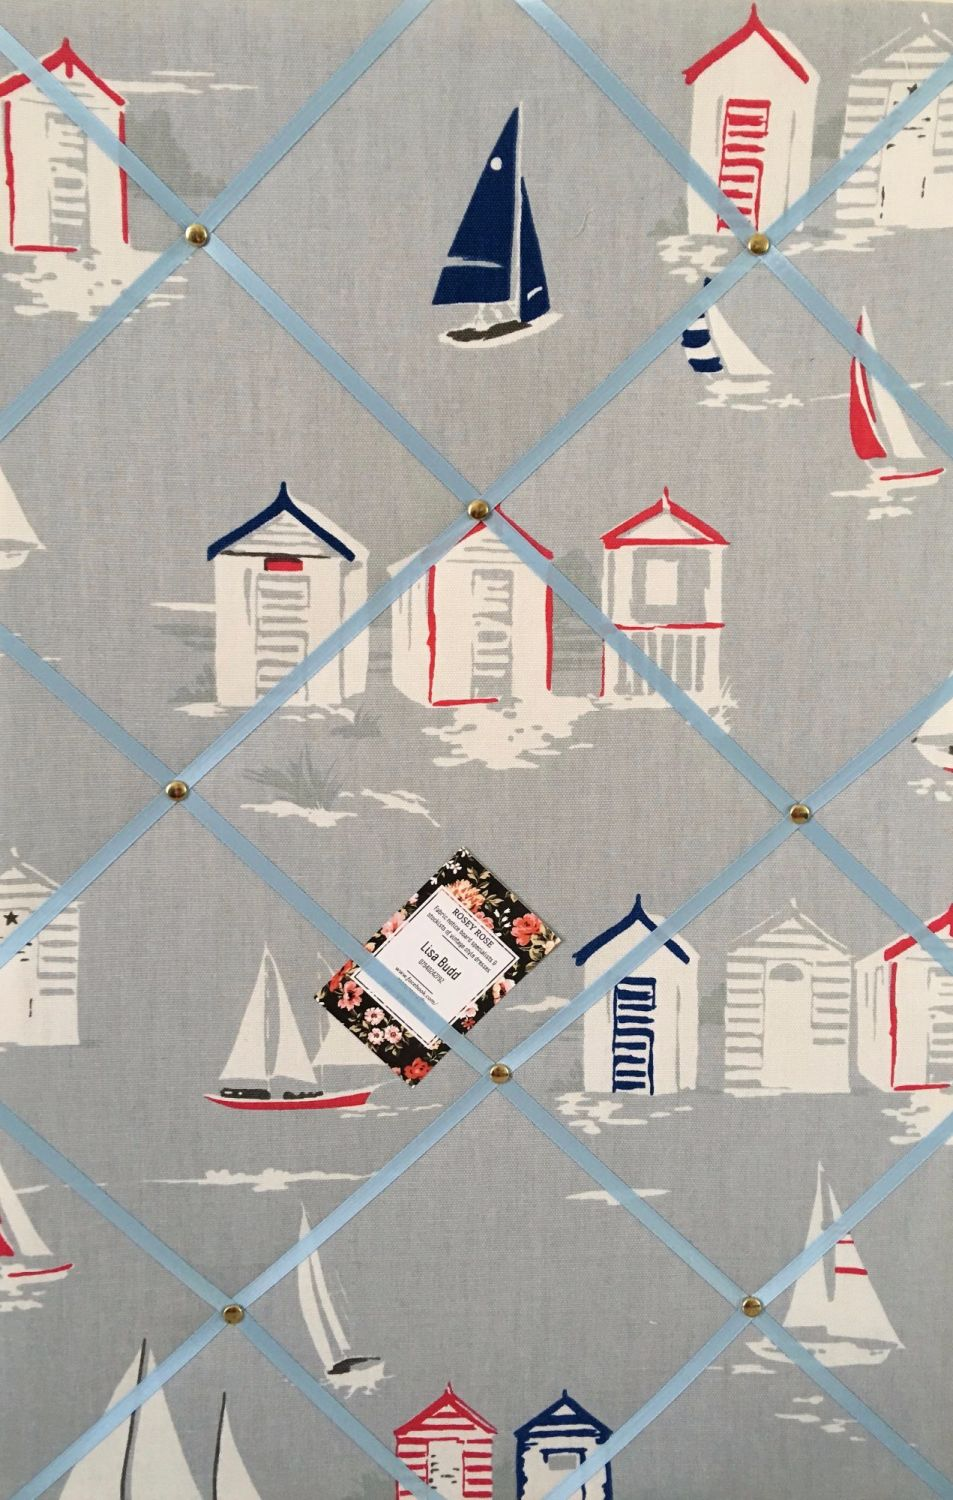 Large 60X40cm Clarke & Clarke Vertical Beach Huts Seasise Hand Crafted Fabr